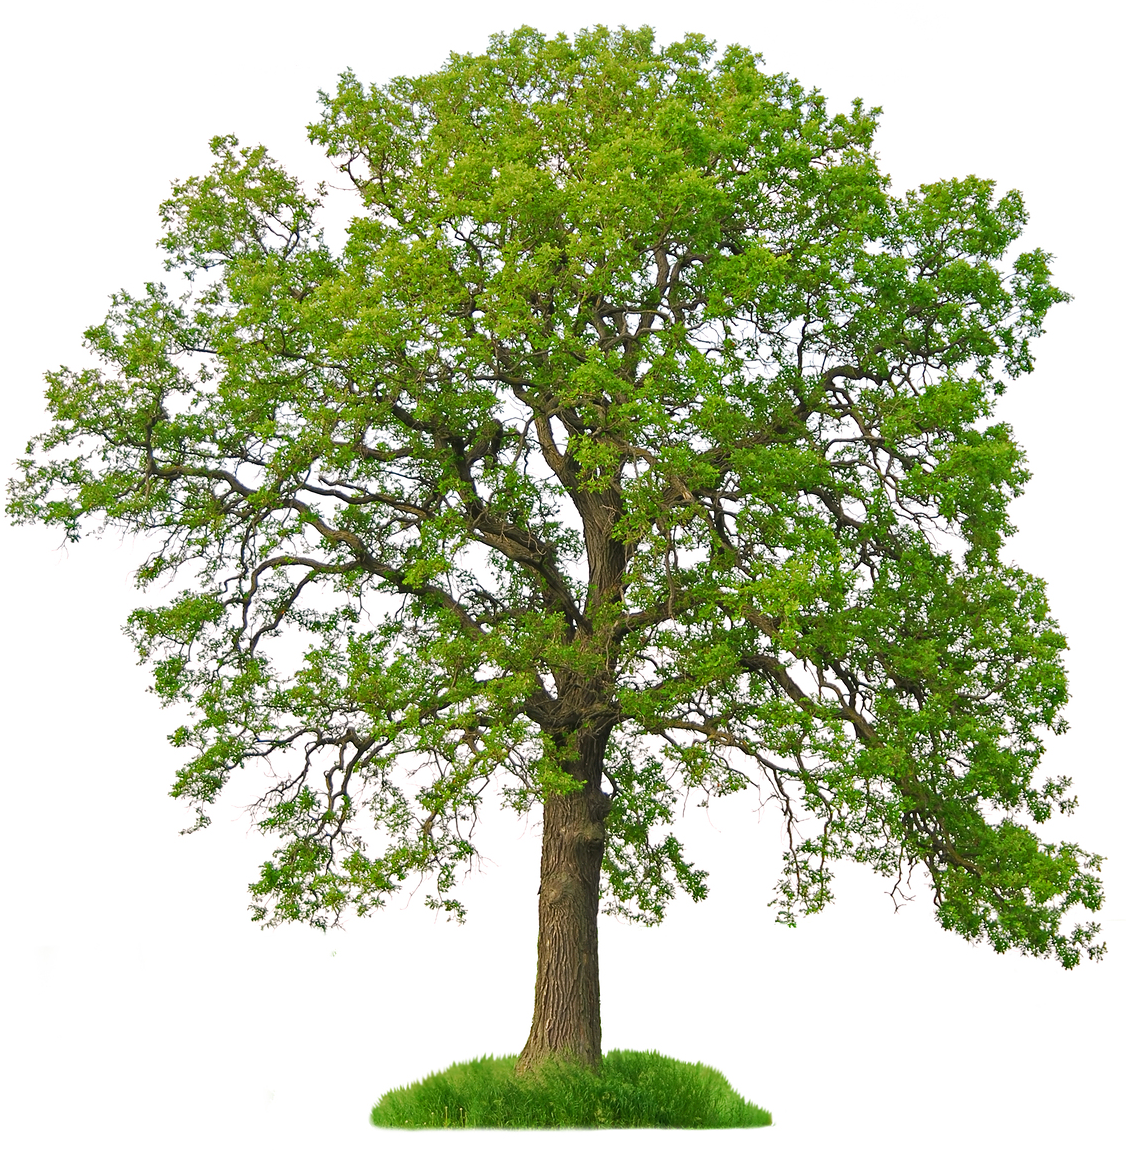 PNG HD Images Of Trees - 126429